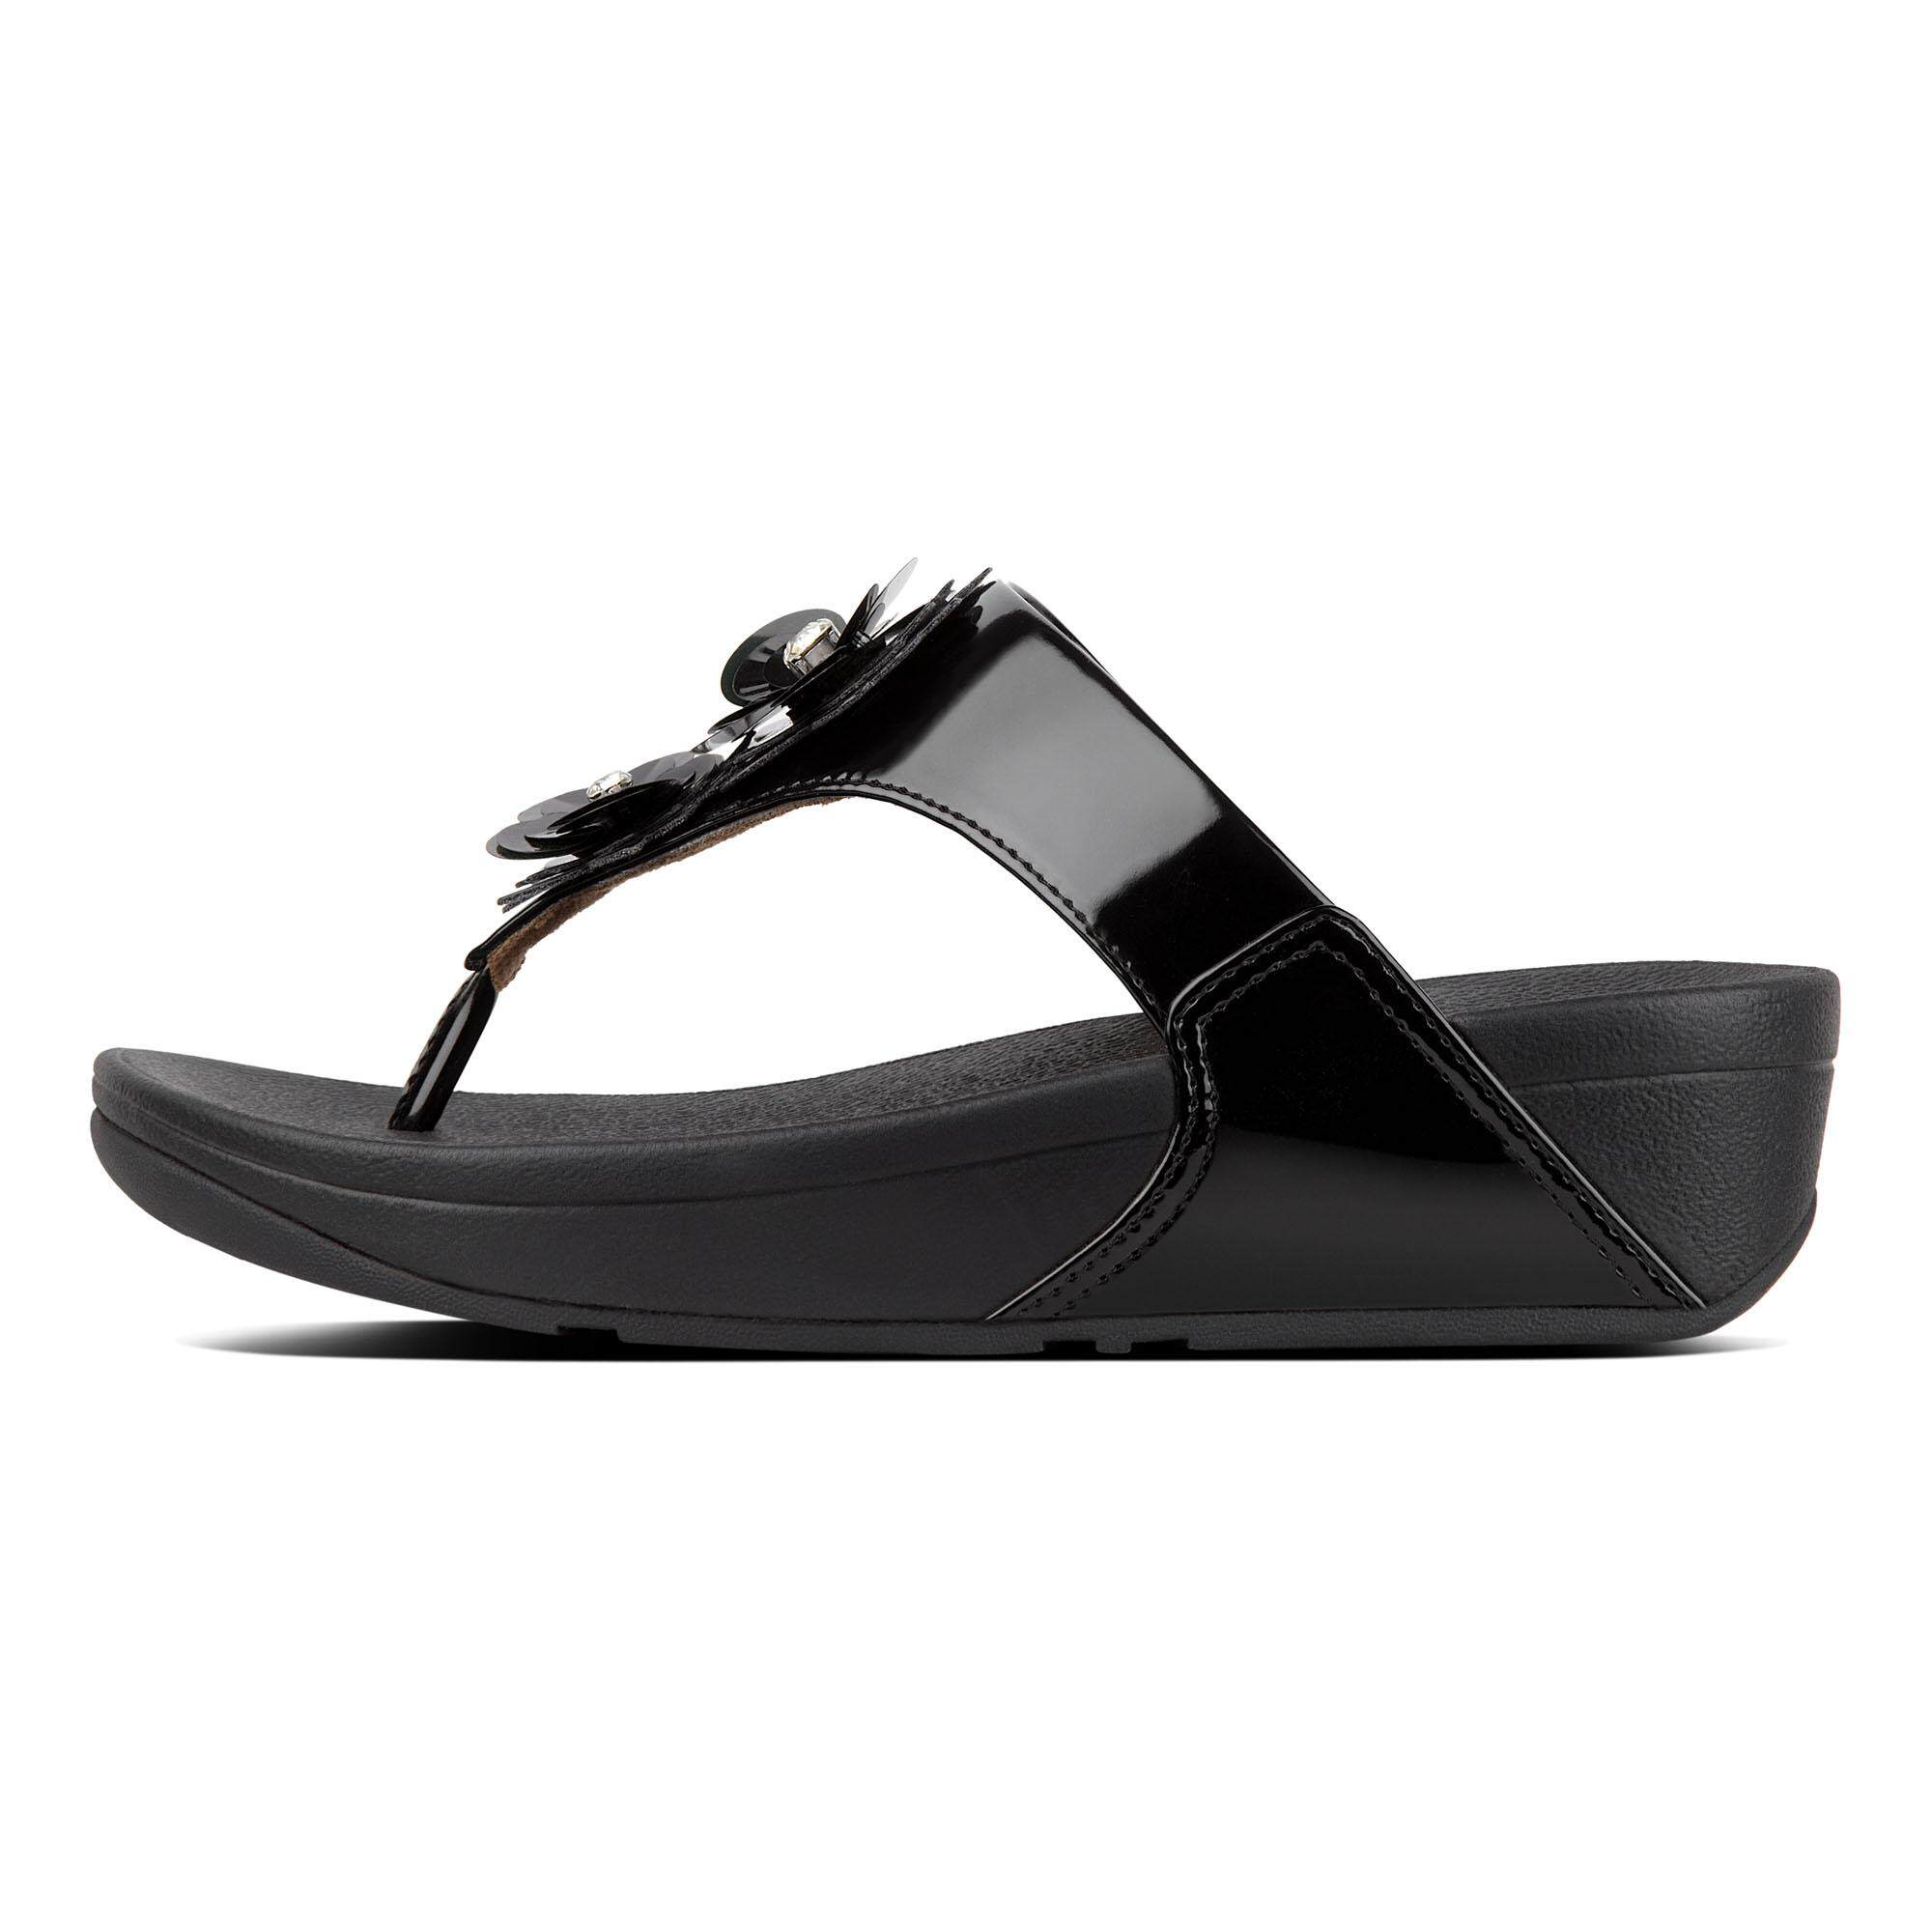 c0b91010b30 Popular Fitflop Sandals for the Best Prices in Malaysia